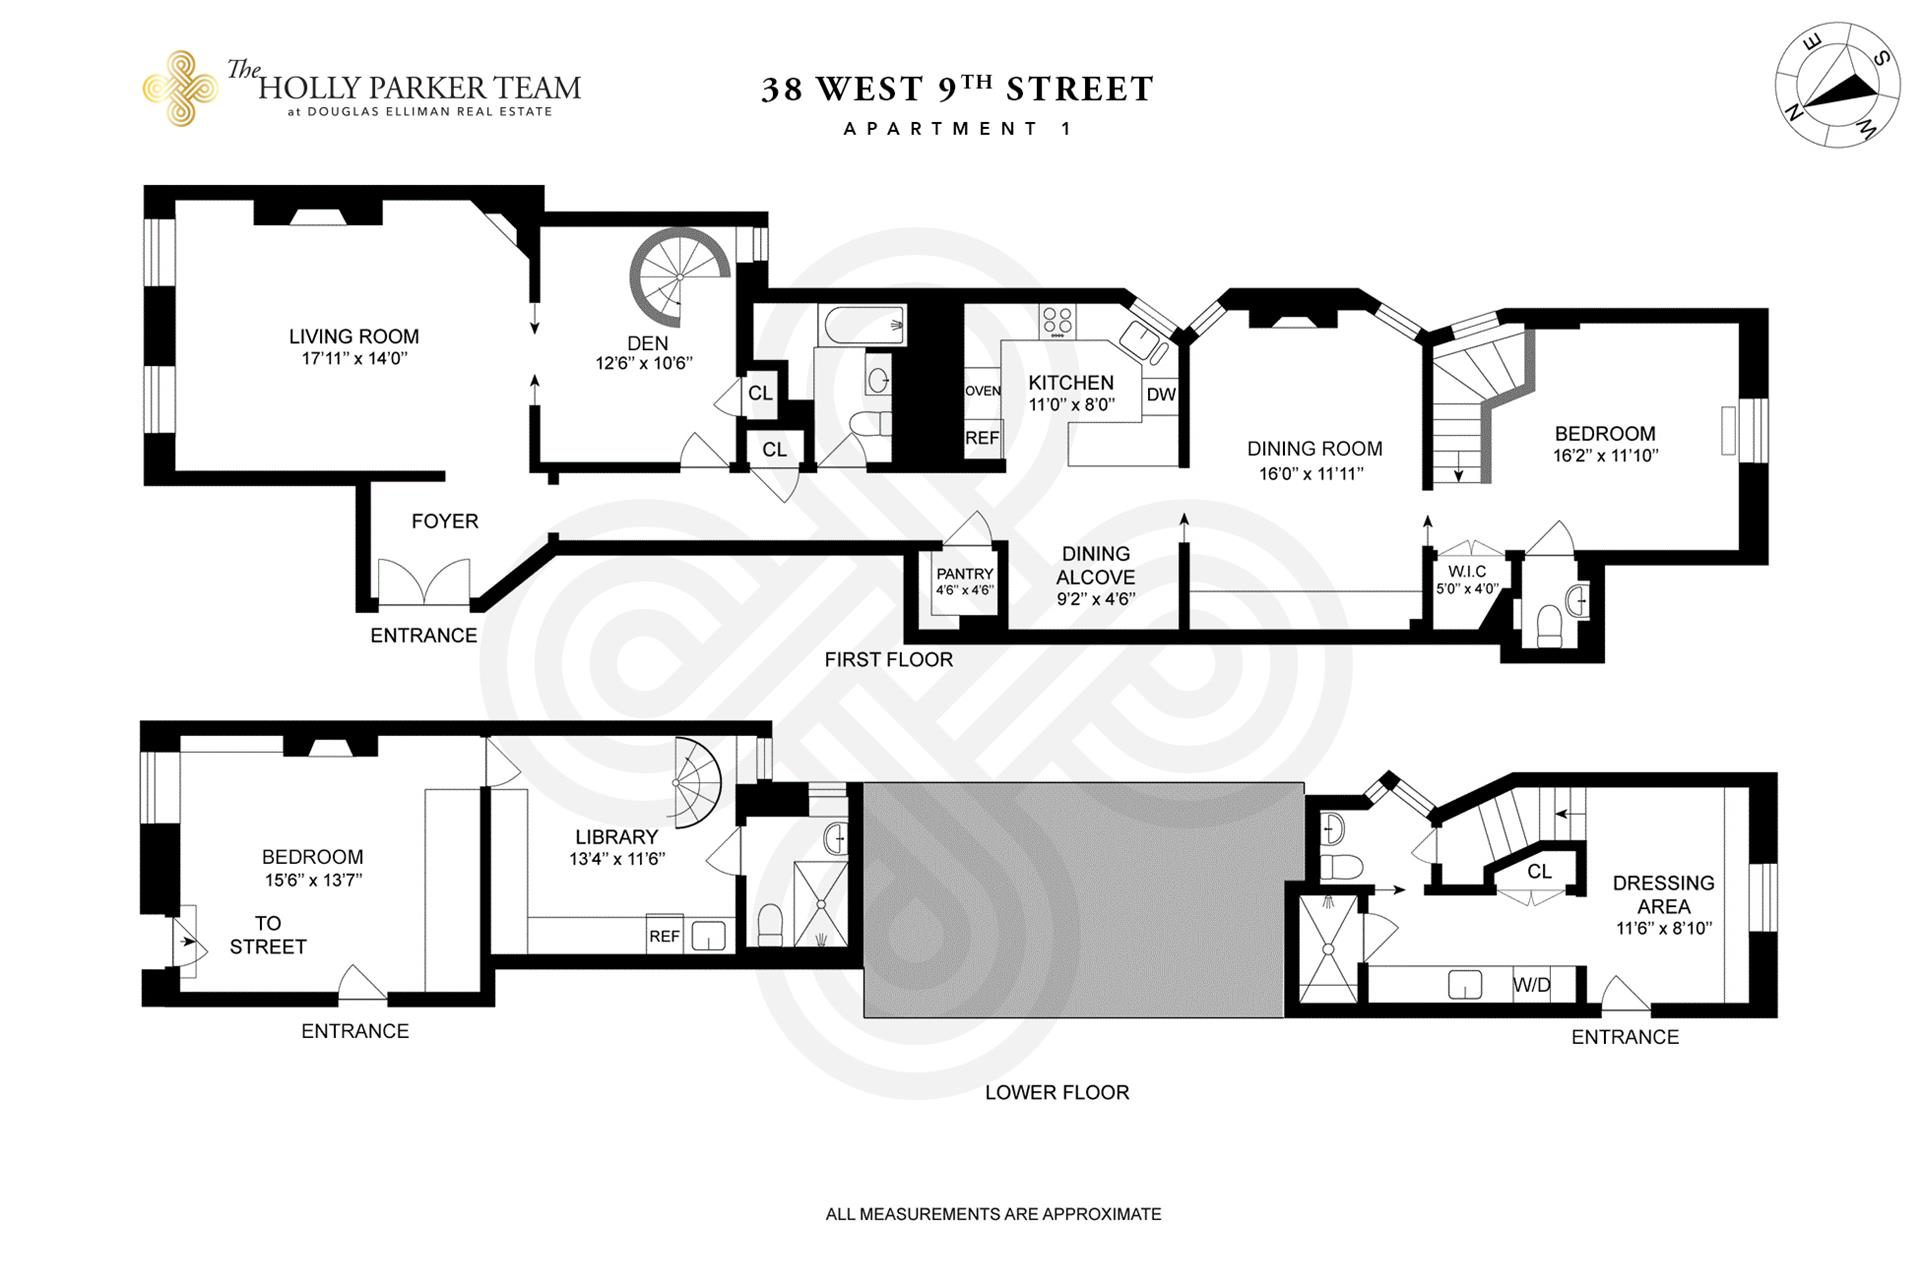 Floor plan of The Portsmouth, 38 West 9th St, 1 - Greenwich Village, New York